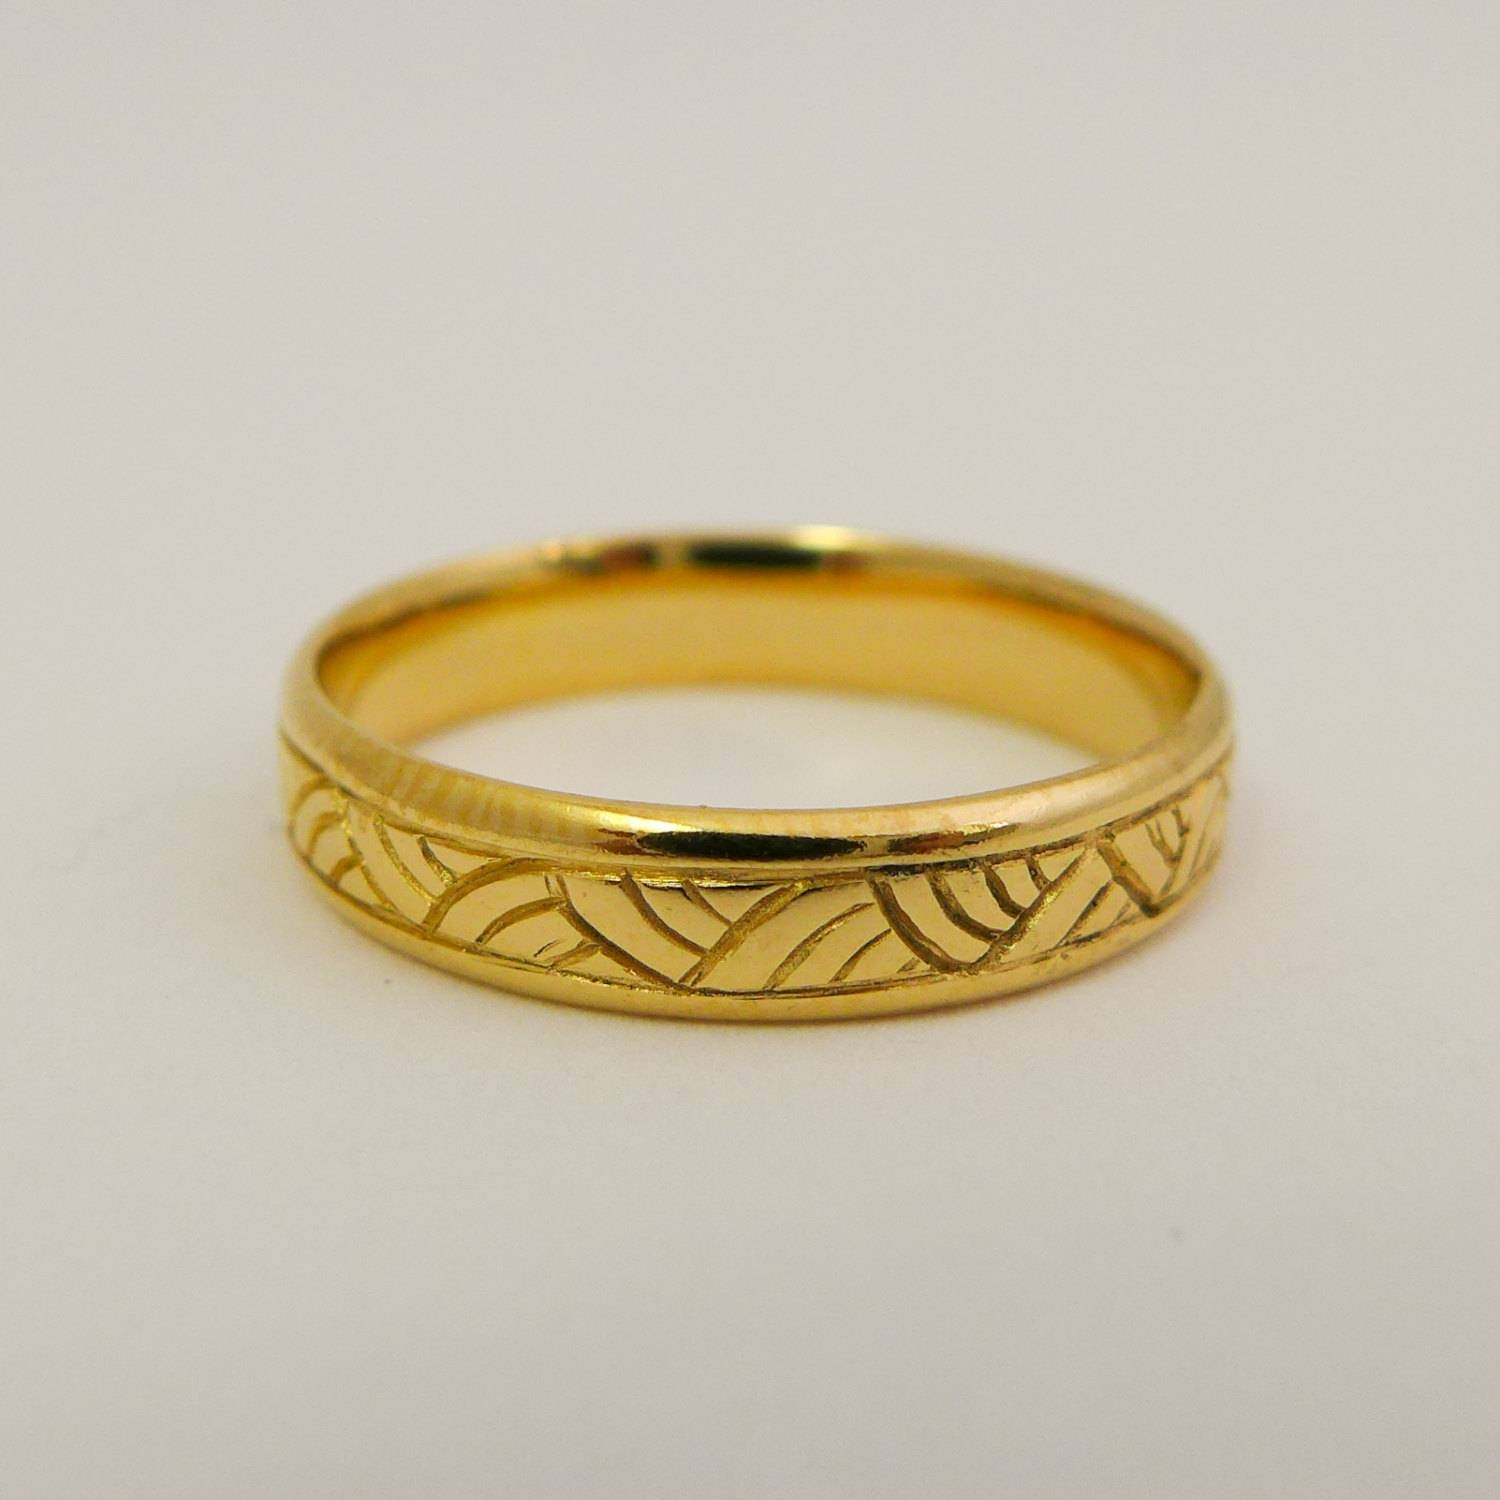 Yellow Gold Wedding Ring 14 Karat Solid Gold Wedding Band For Pertaining To 14 Karat Gold Wedding Bands (View 15 of 15)